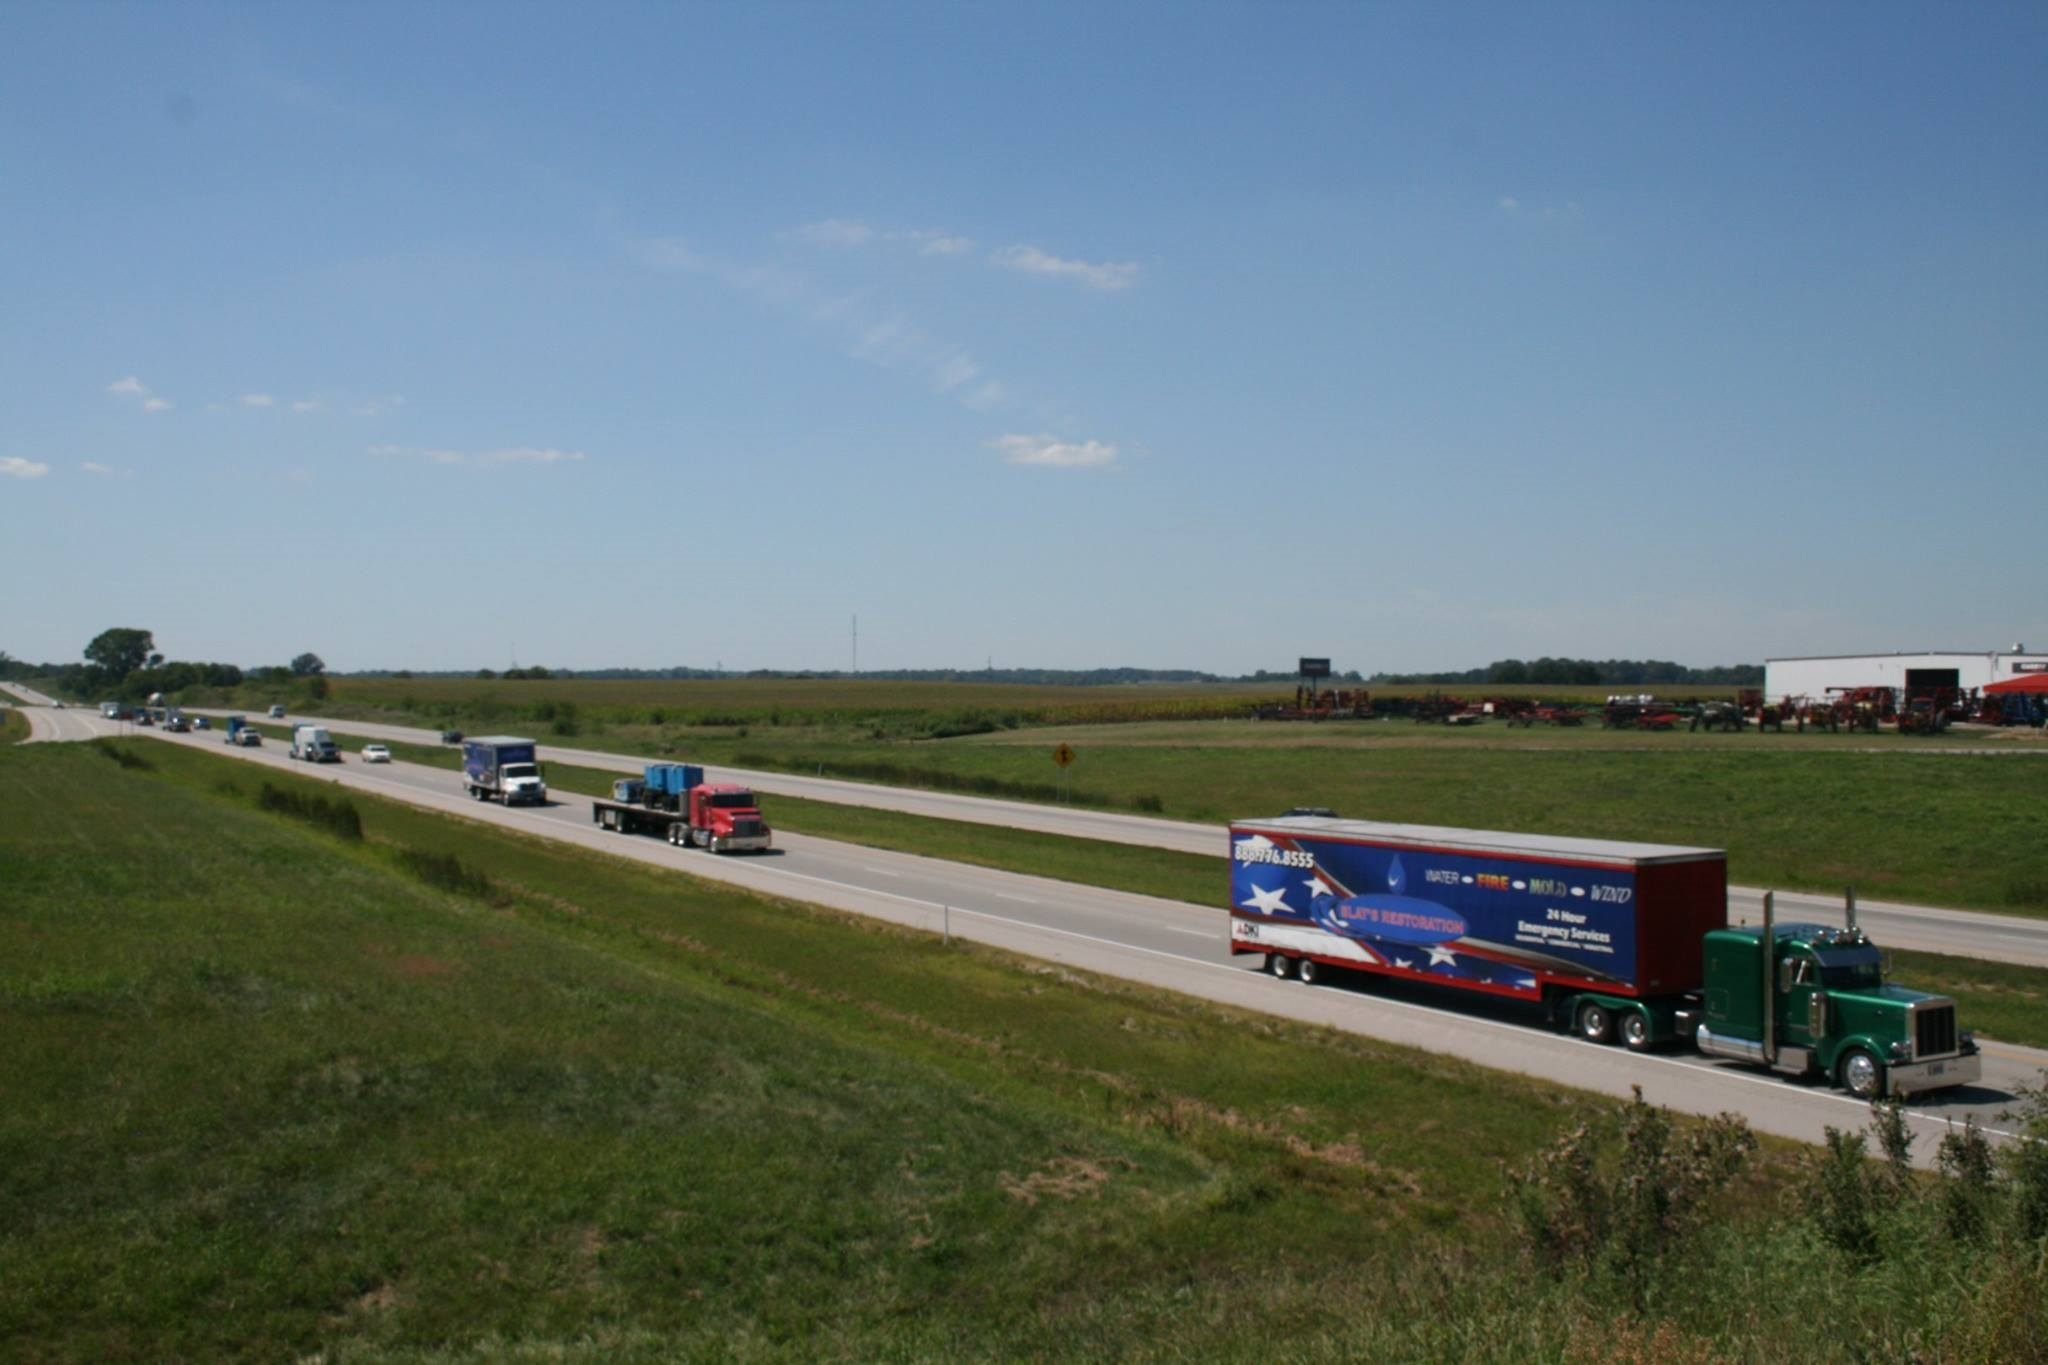 Semi-trailers traveling on the interstate